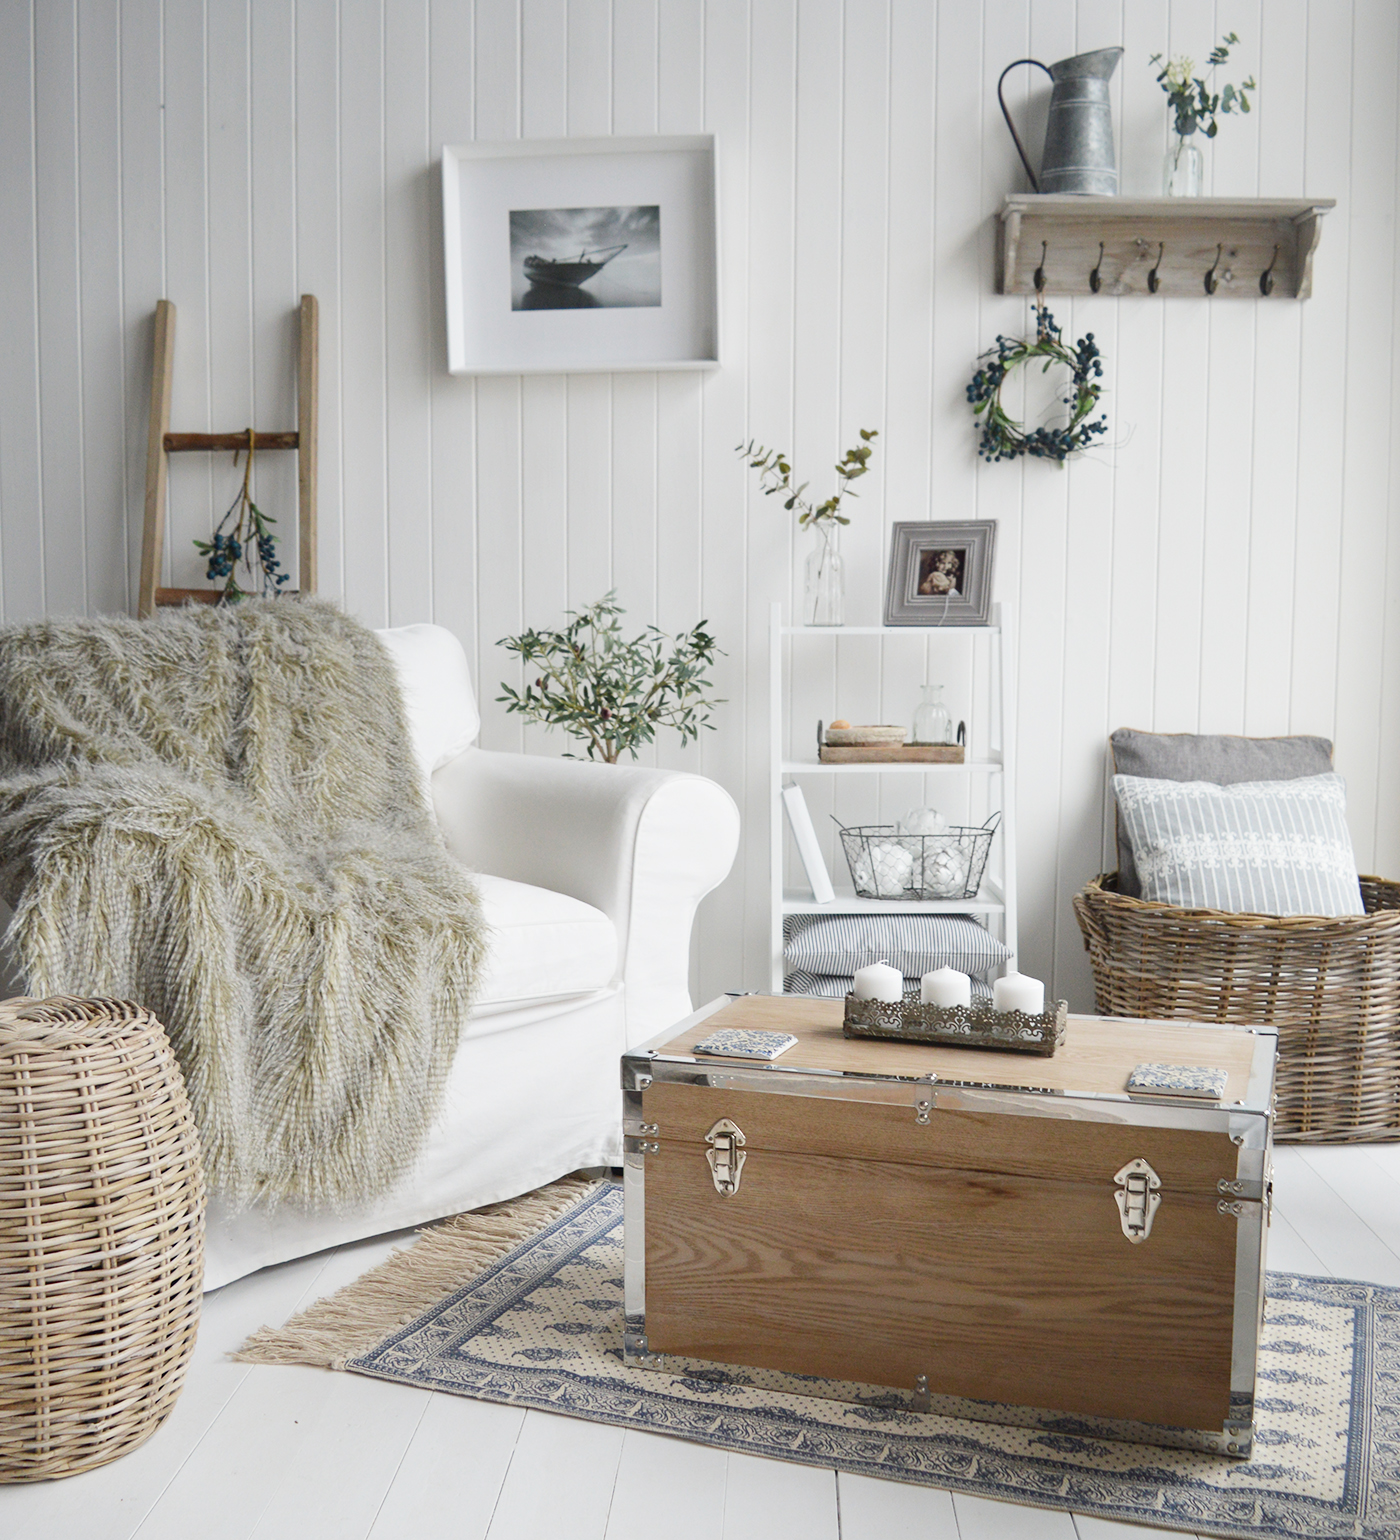 The White Lighthouse. New England Style White Furniture and accessories for the home. Speckled luxury faux fur throw blandket bedspread